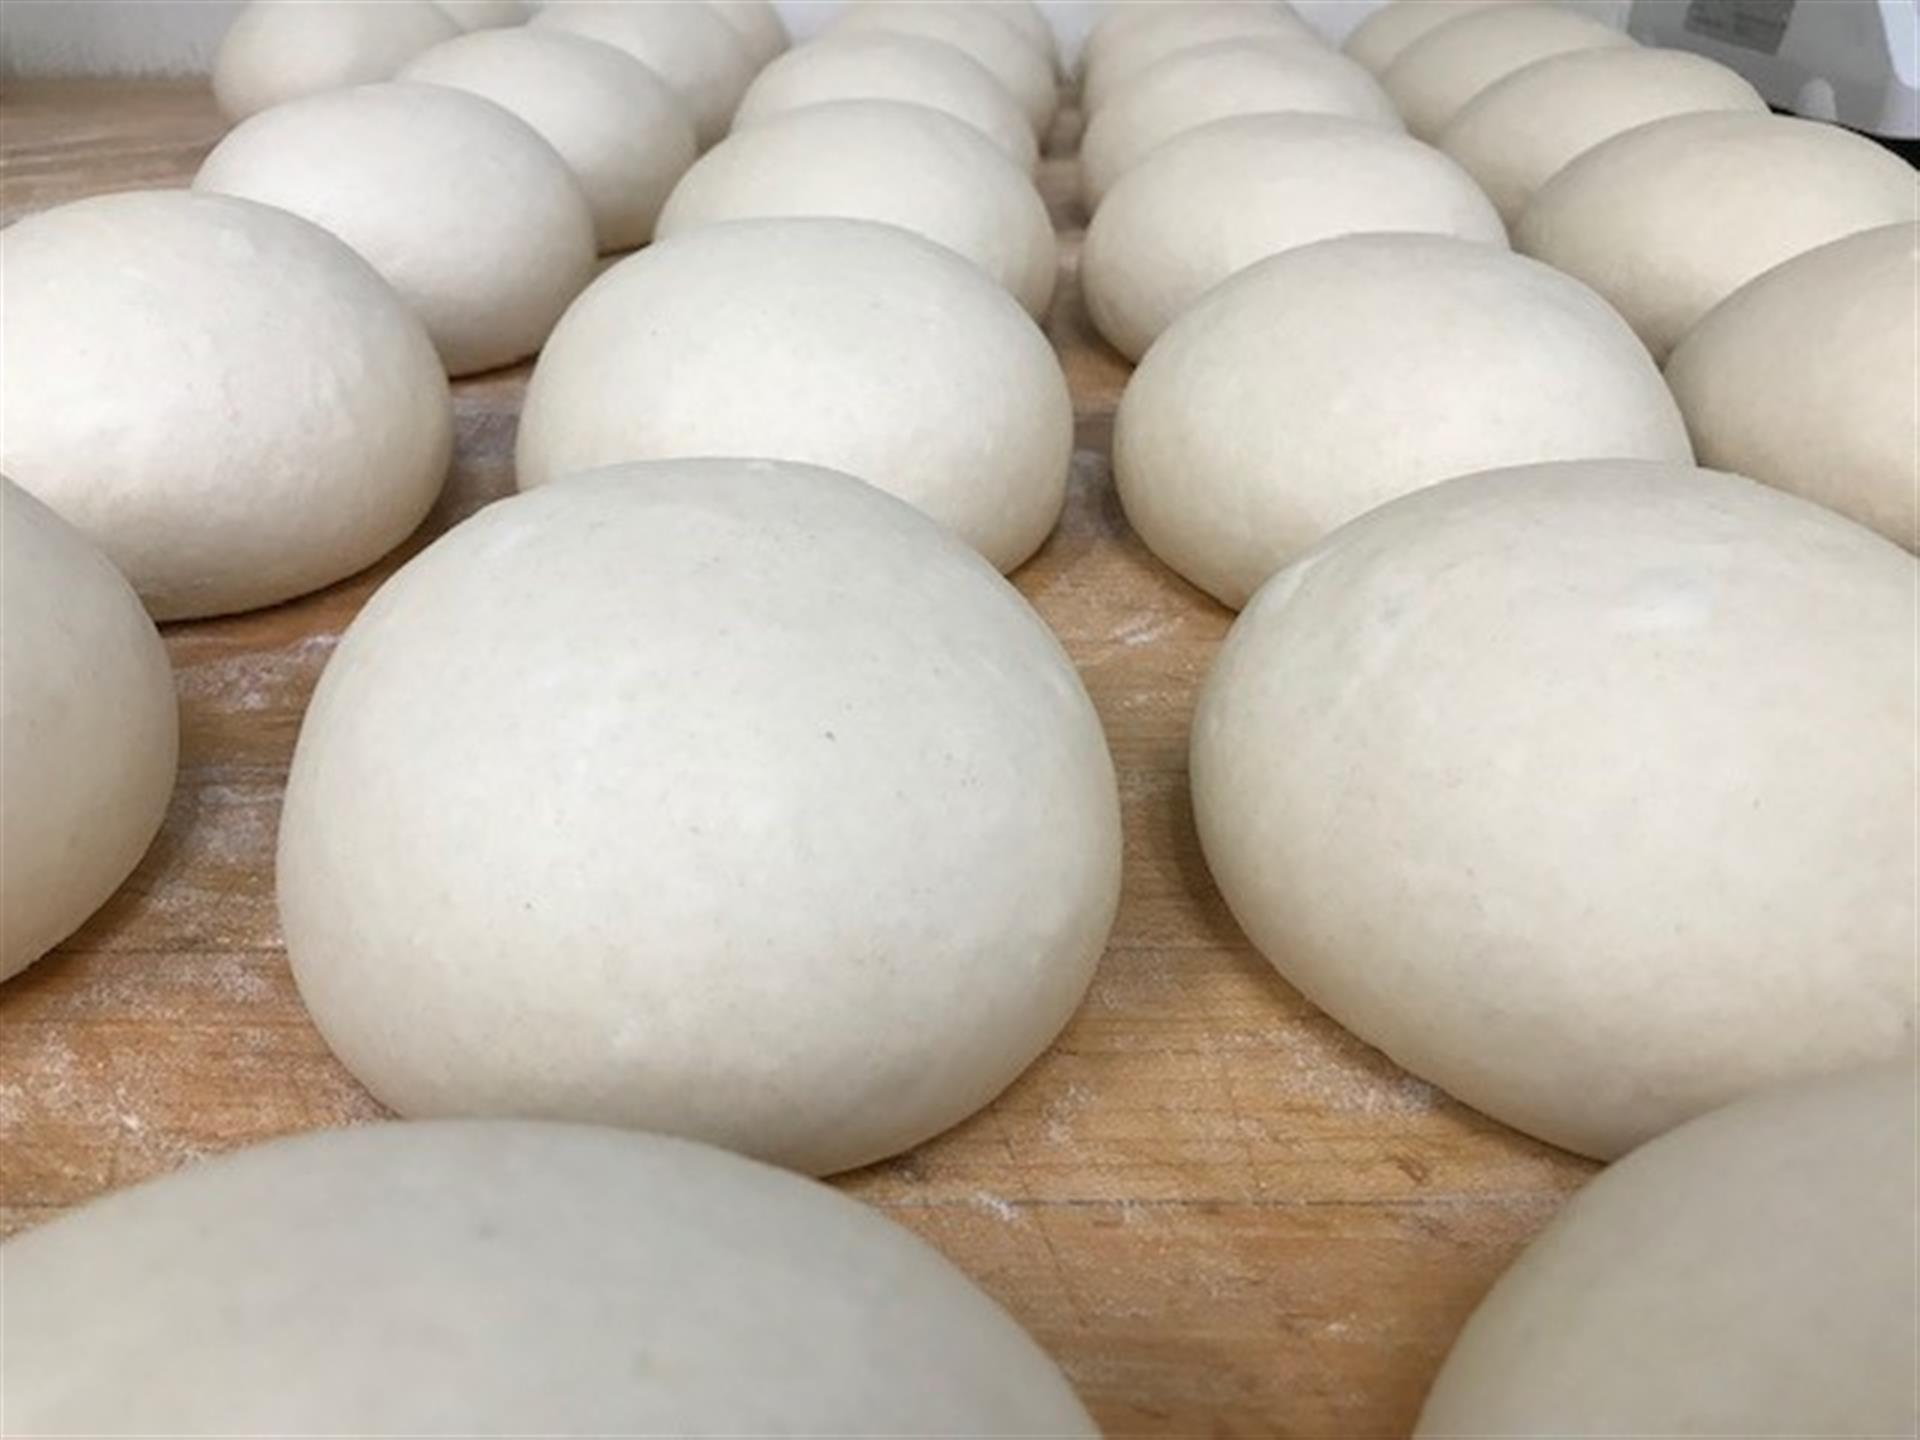 Pizza dough rolled into balls and lined up on wood cutting board.